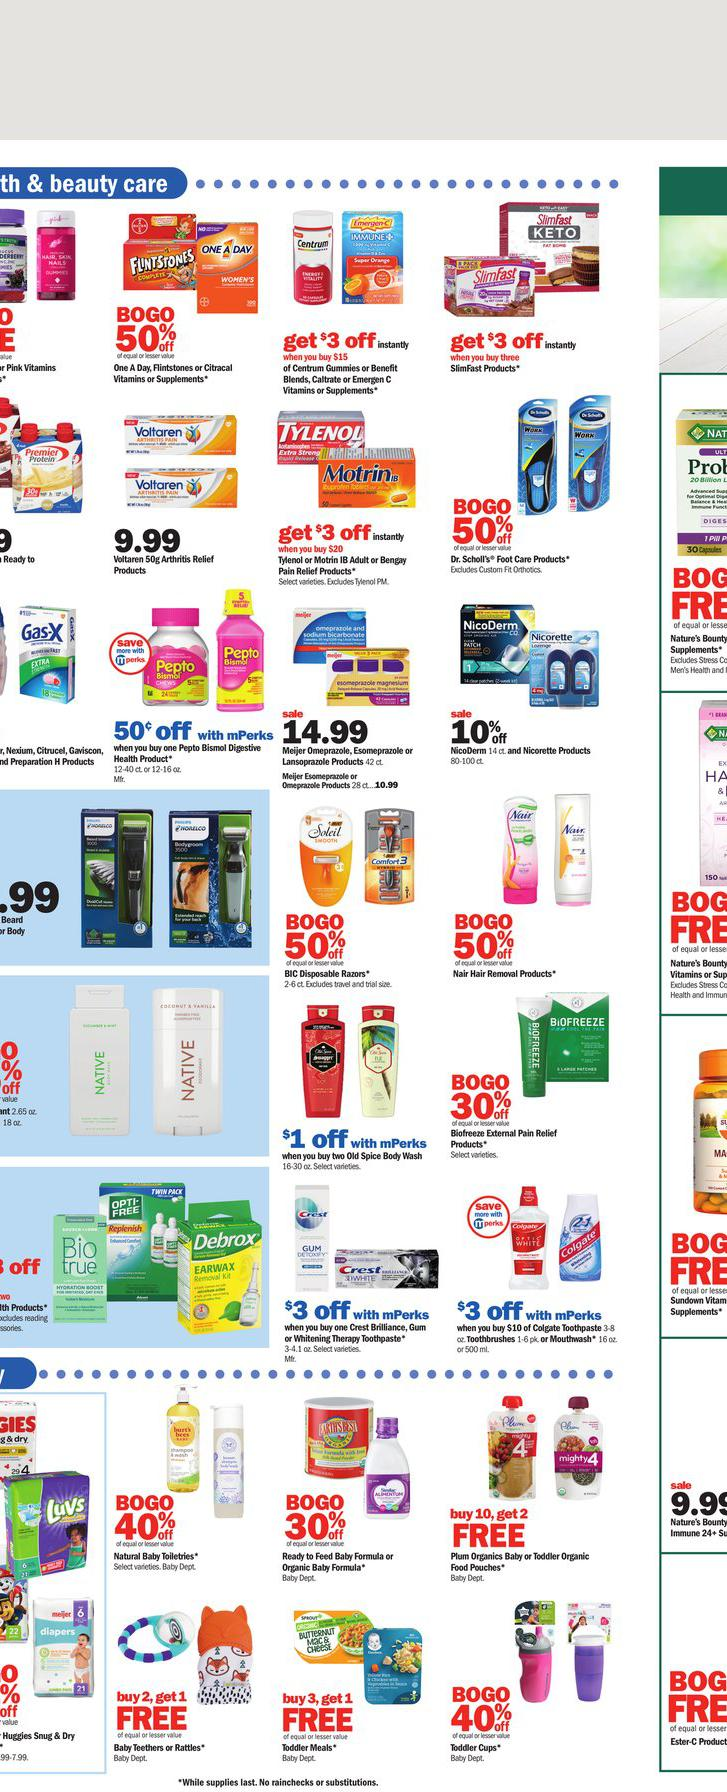 01.08.2021 Meijer ad 17. page